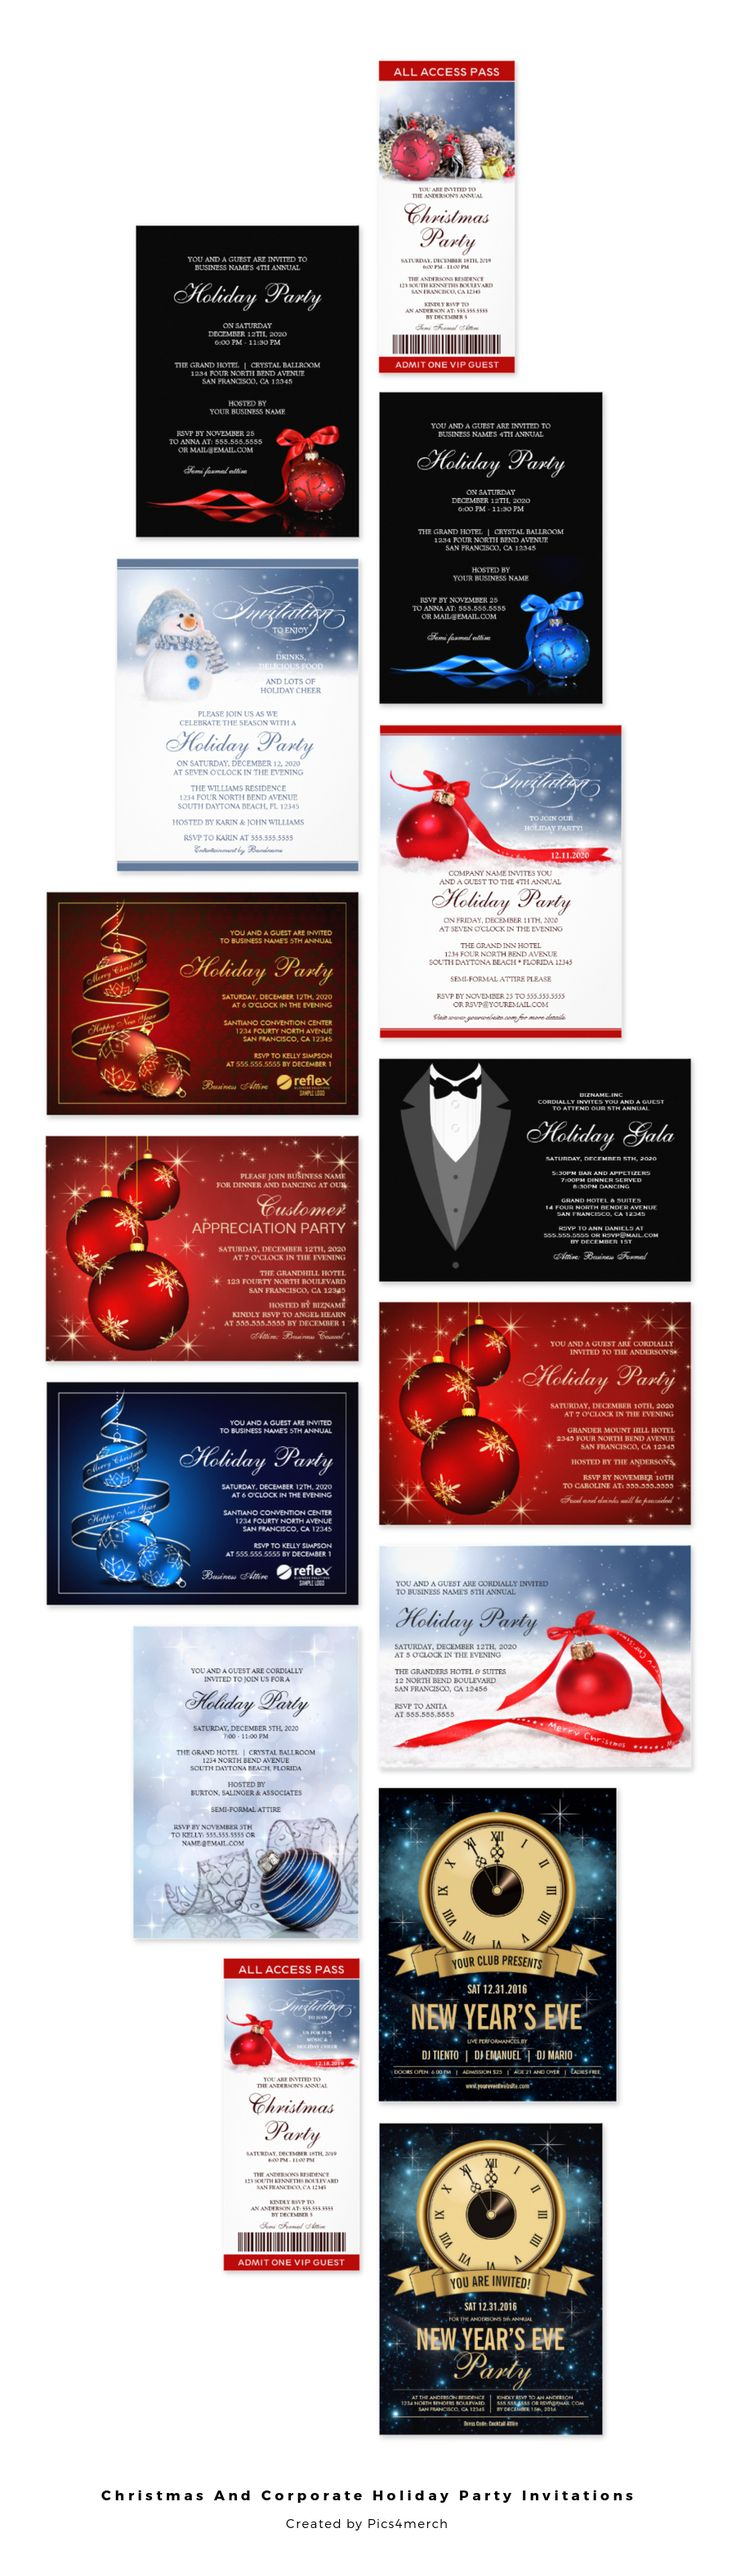 17 best images about christmas and holiday party invitations on enjoy browsing our best christmas invitation templates including holiday party ticket invitations business holiday